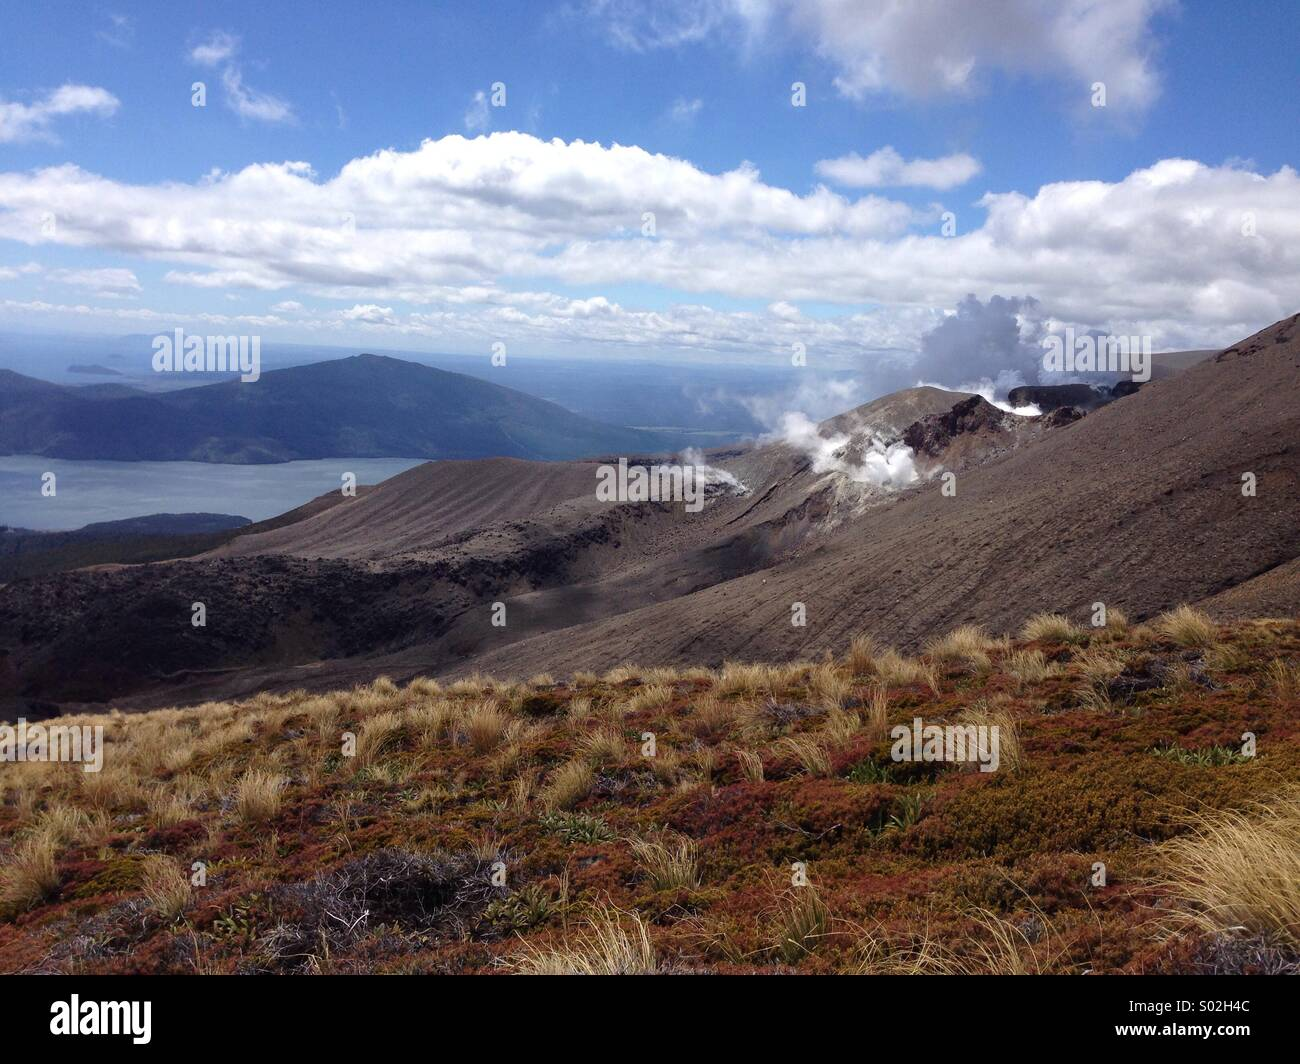 Volcanic activity on the Tongariro Crossing, New Zealand - Stock Image